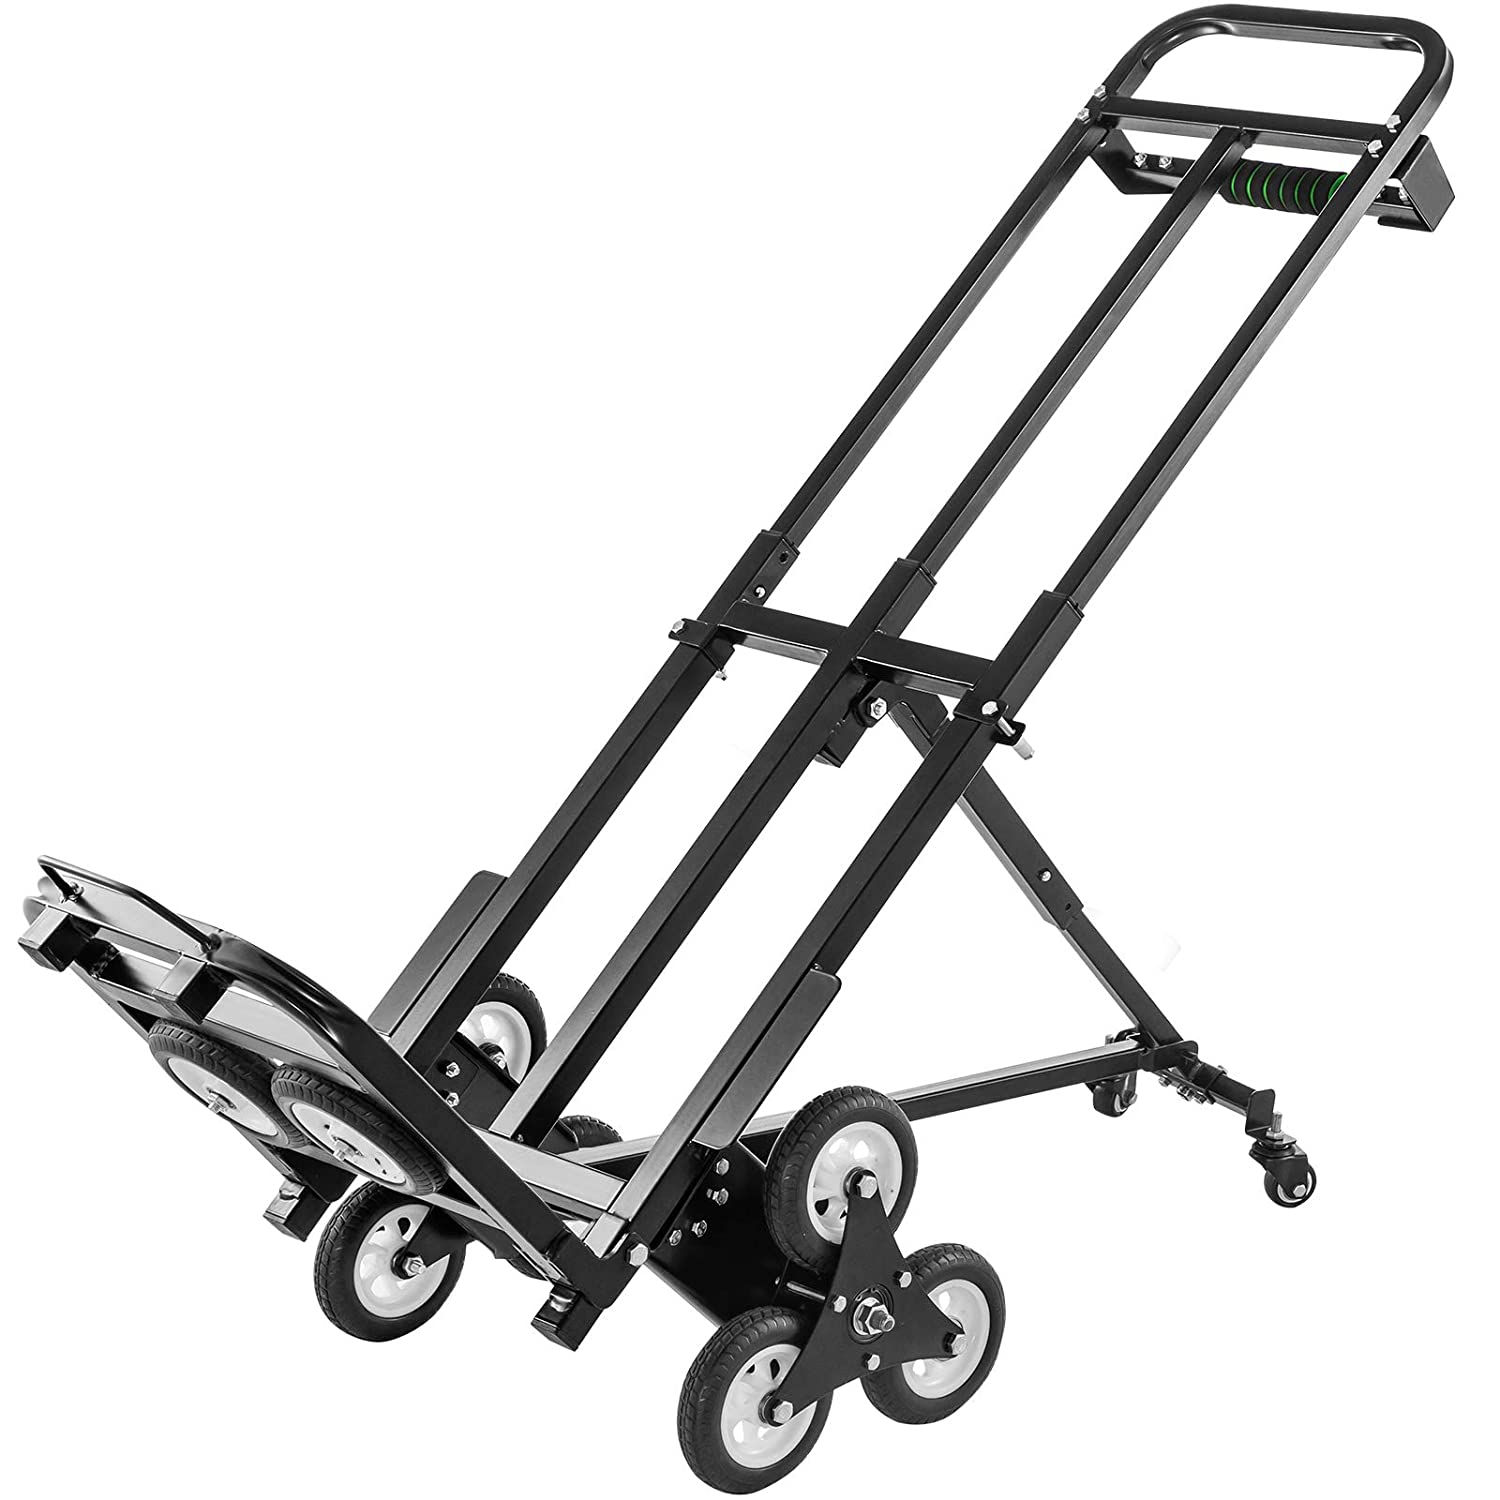 VEVOR Stair Climbing Cart 460lbs Capacity, Portable Folding Trolley with 5Inch and 1.5Inch Wheels, Stair Climber Hand Truck with Adjustable Handle, All Terrain Heavy Duty Dolly Cart for Stairs